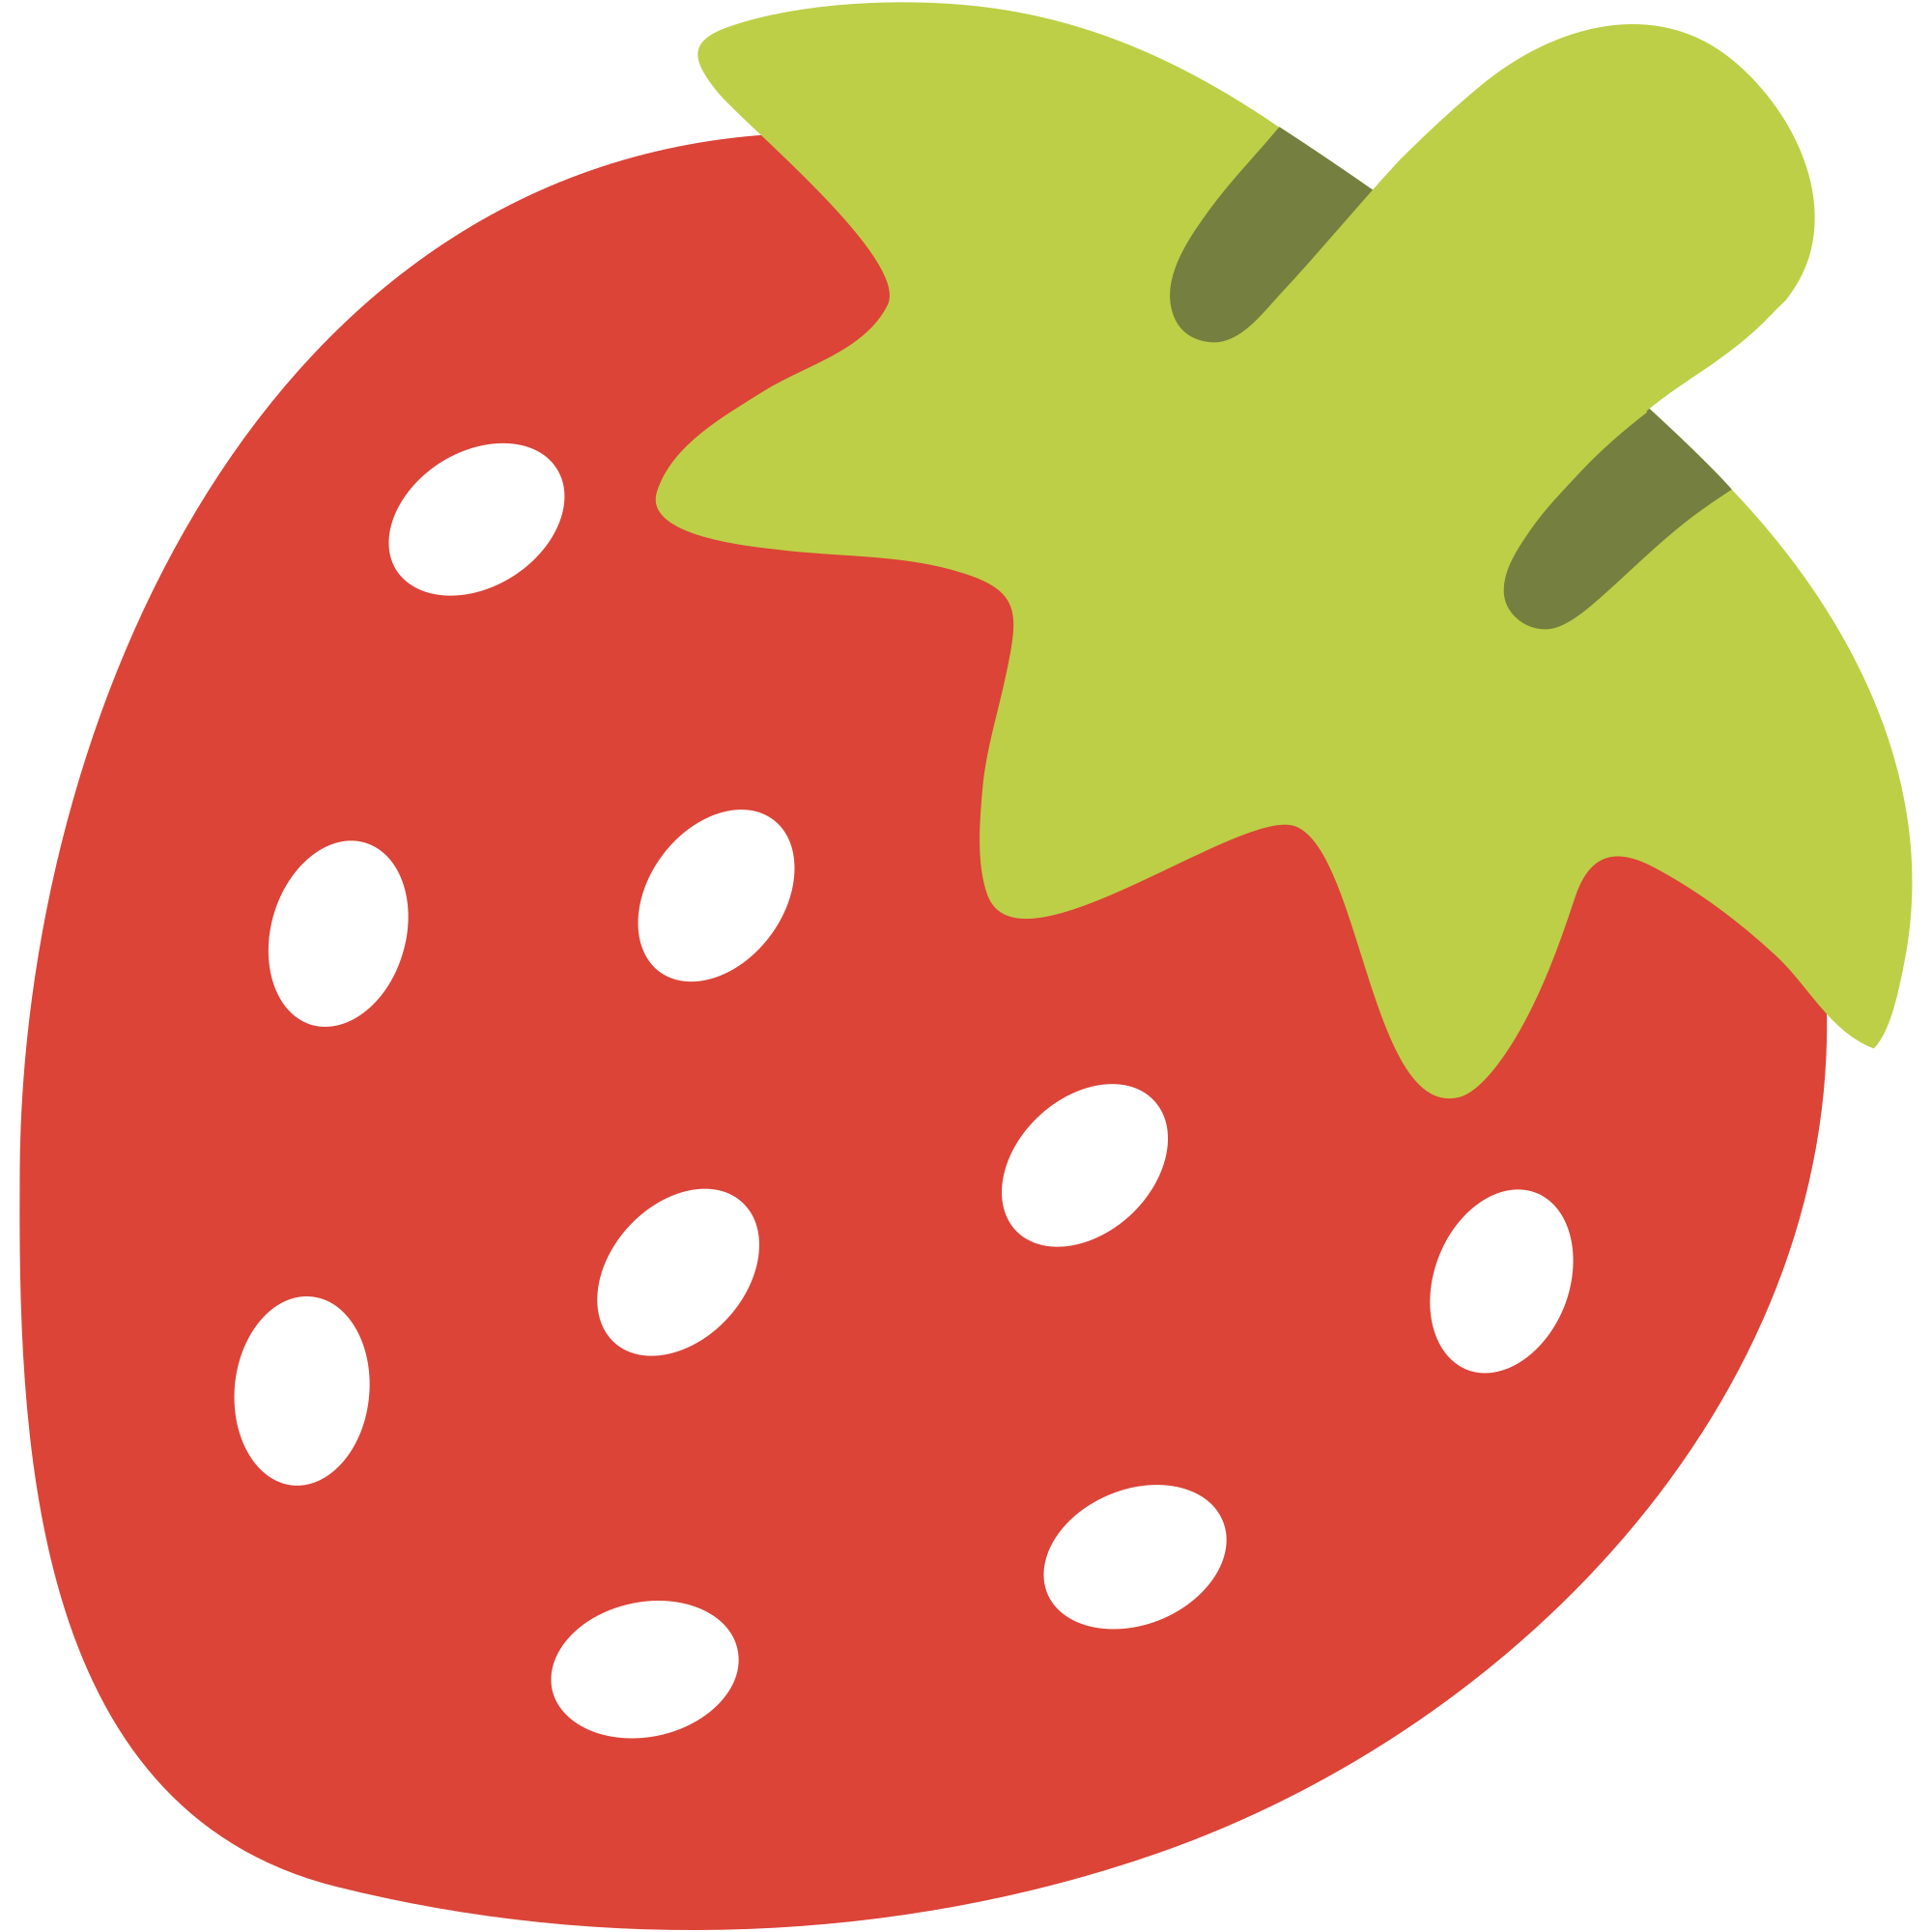 strawberries clipart emoji #144490415